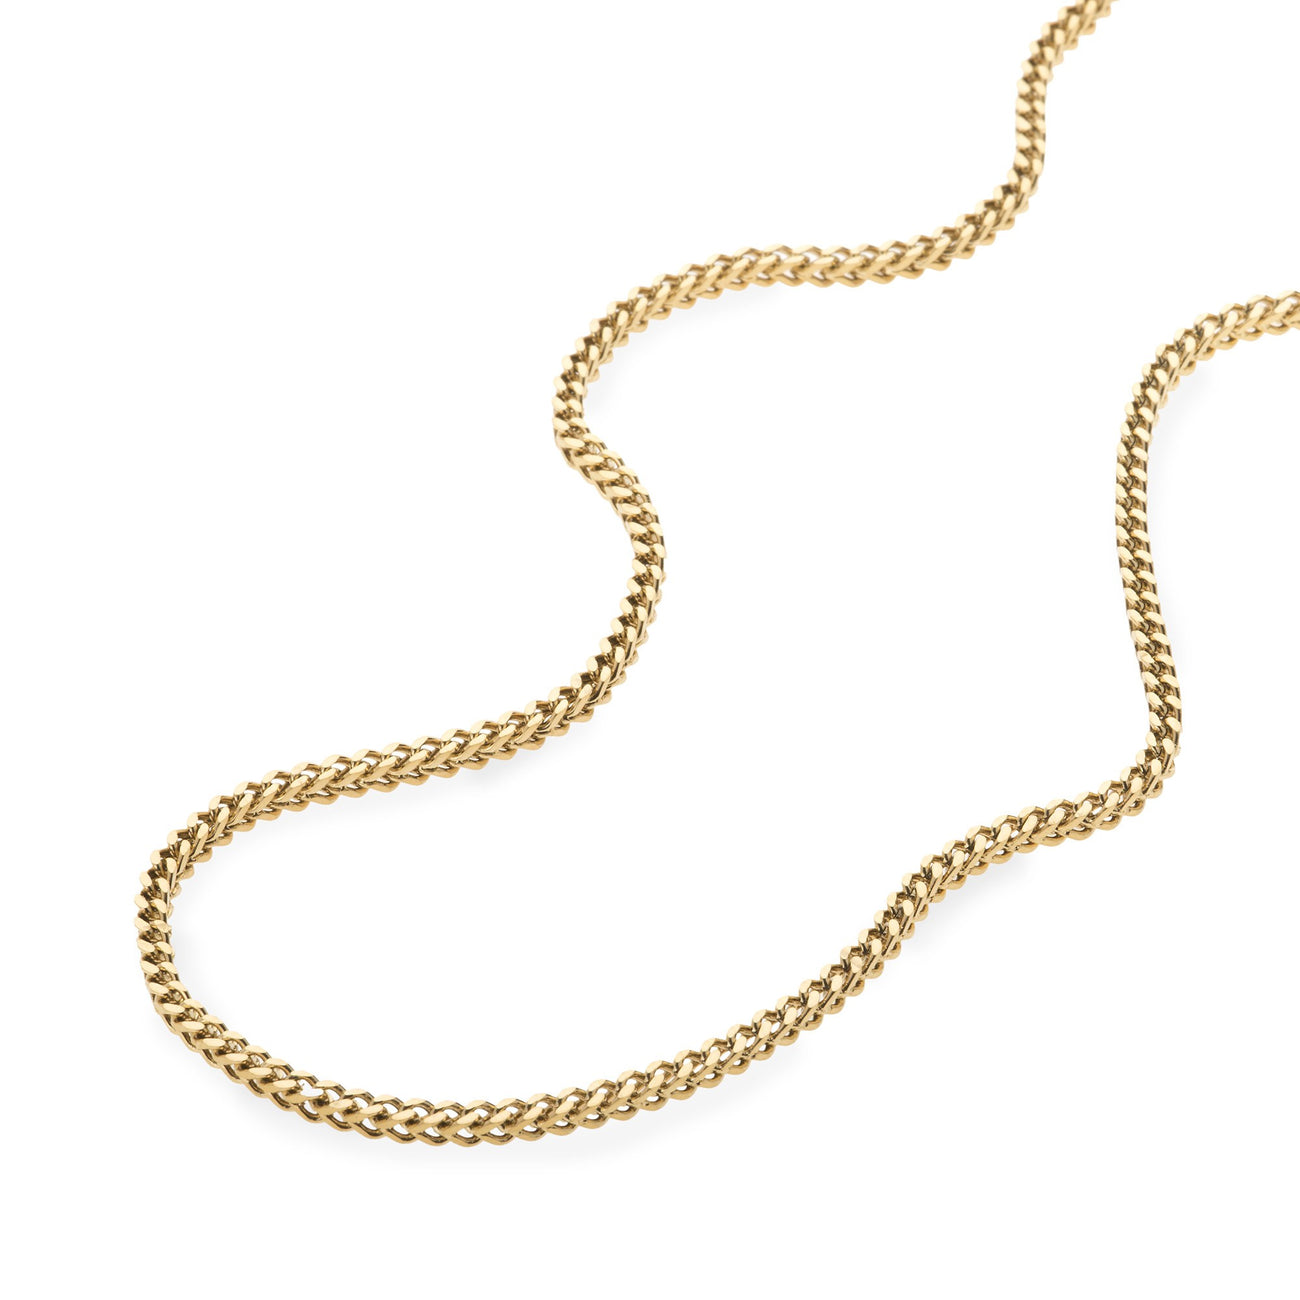 2.5mm Gold Franco Box Chain , Chains, SpicyIce - 2